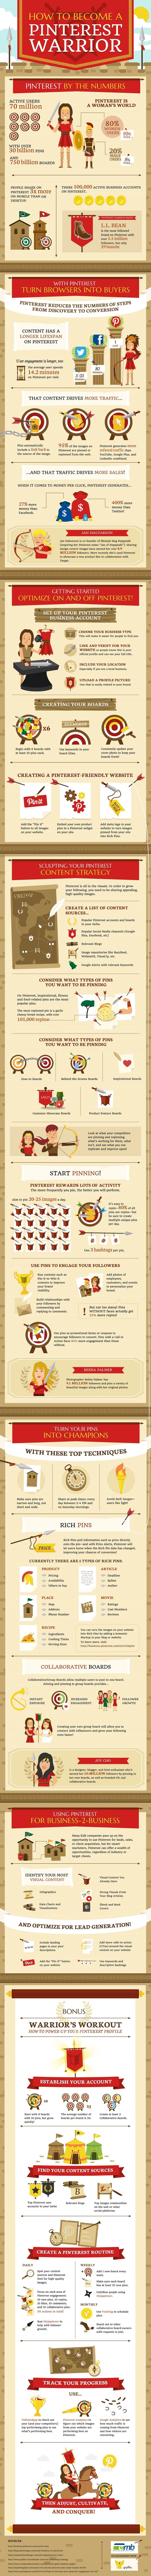 How to Rule Pinterest for Ages [Infographic] http://socialmarketingwriting.com/how-to-rule-pinterest-for-ages-infographic/